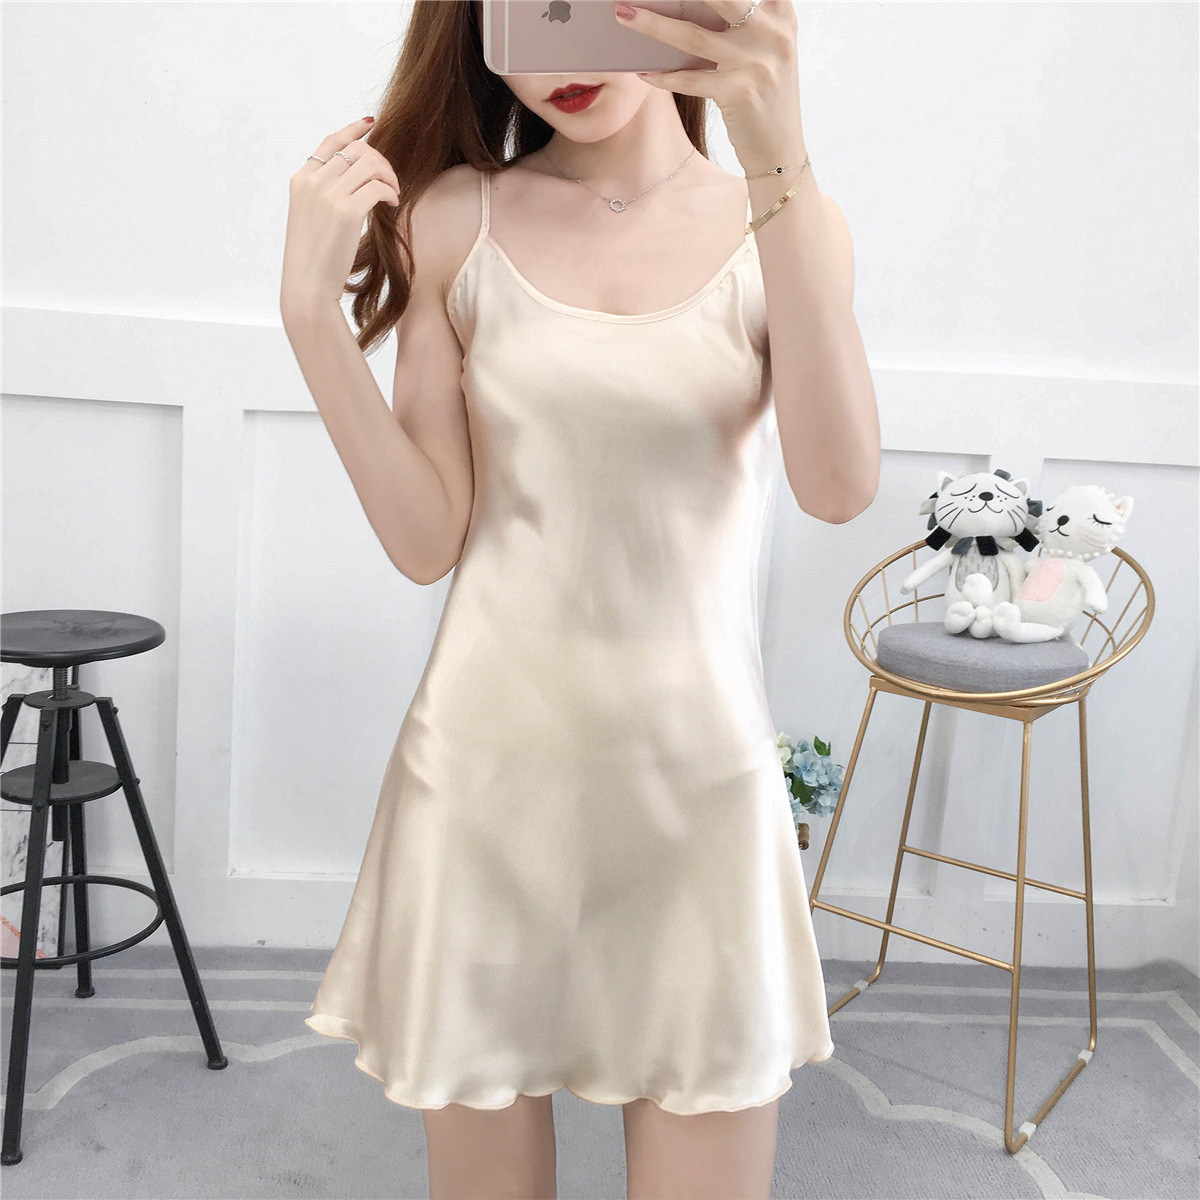 3XL 4XL 5XL Women Nightwear Summer Nightie Sleeveless Home Dress Satin Nightdress Nightgown Sexy Sleepwear Sleepshirt Plus Size